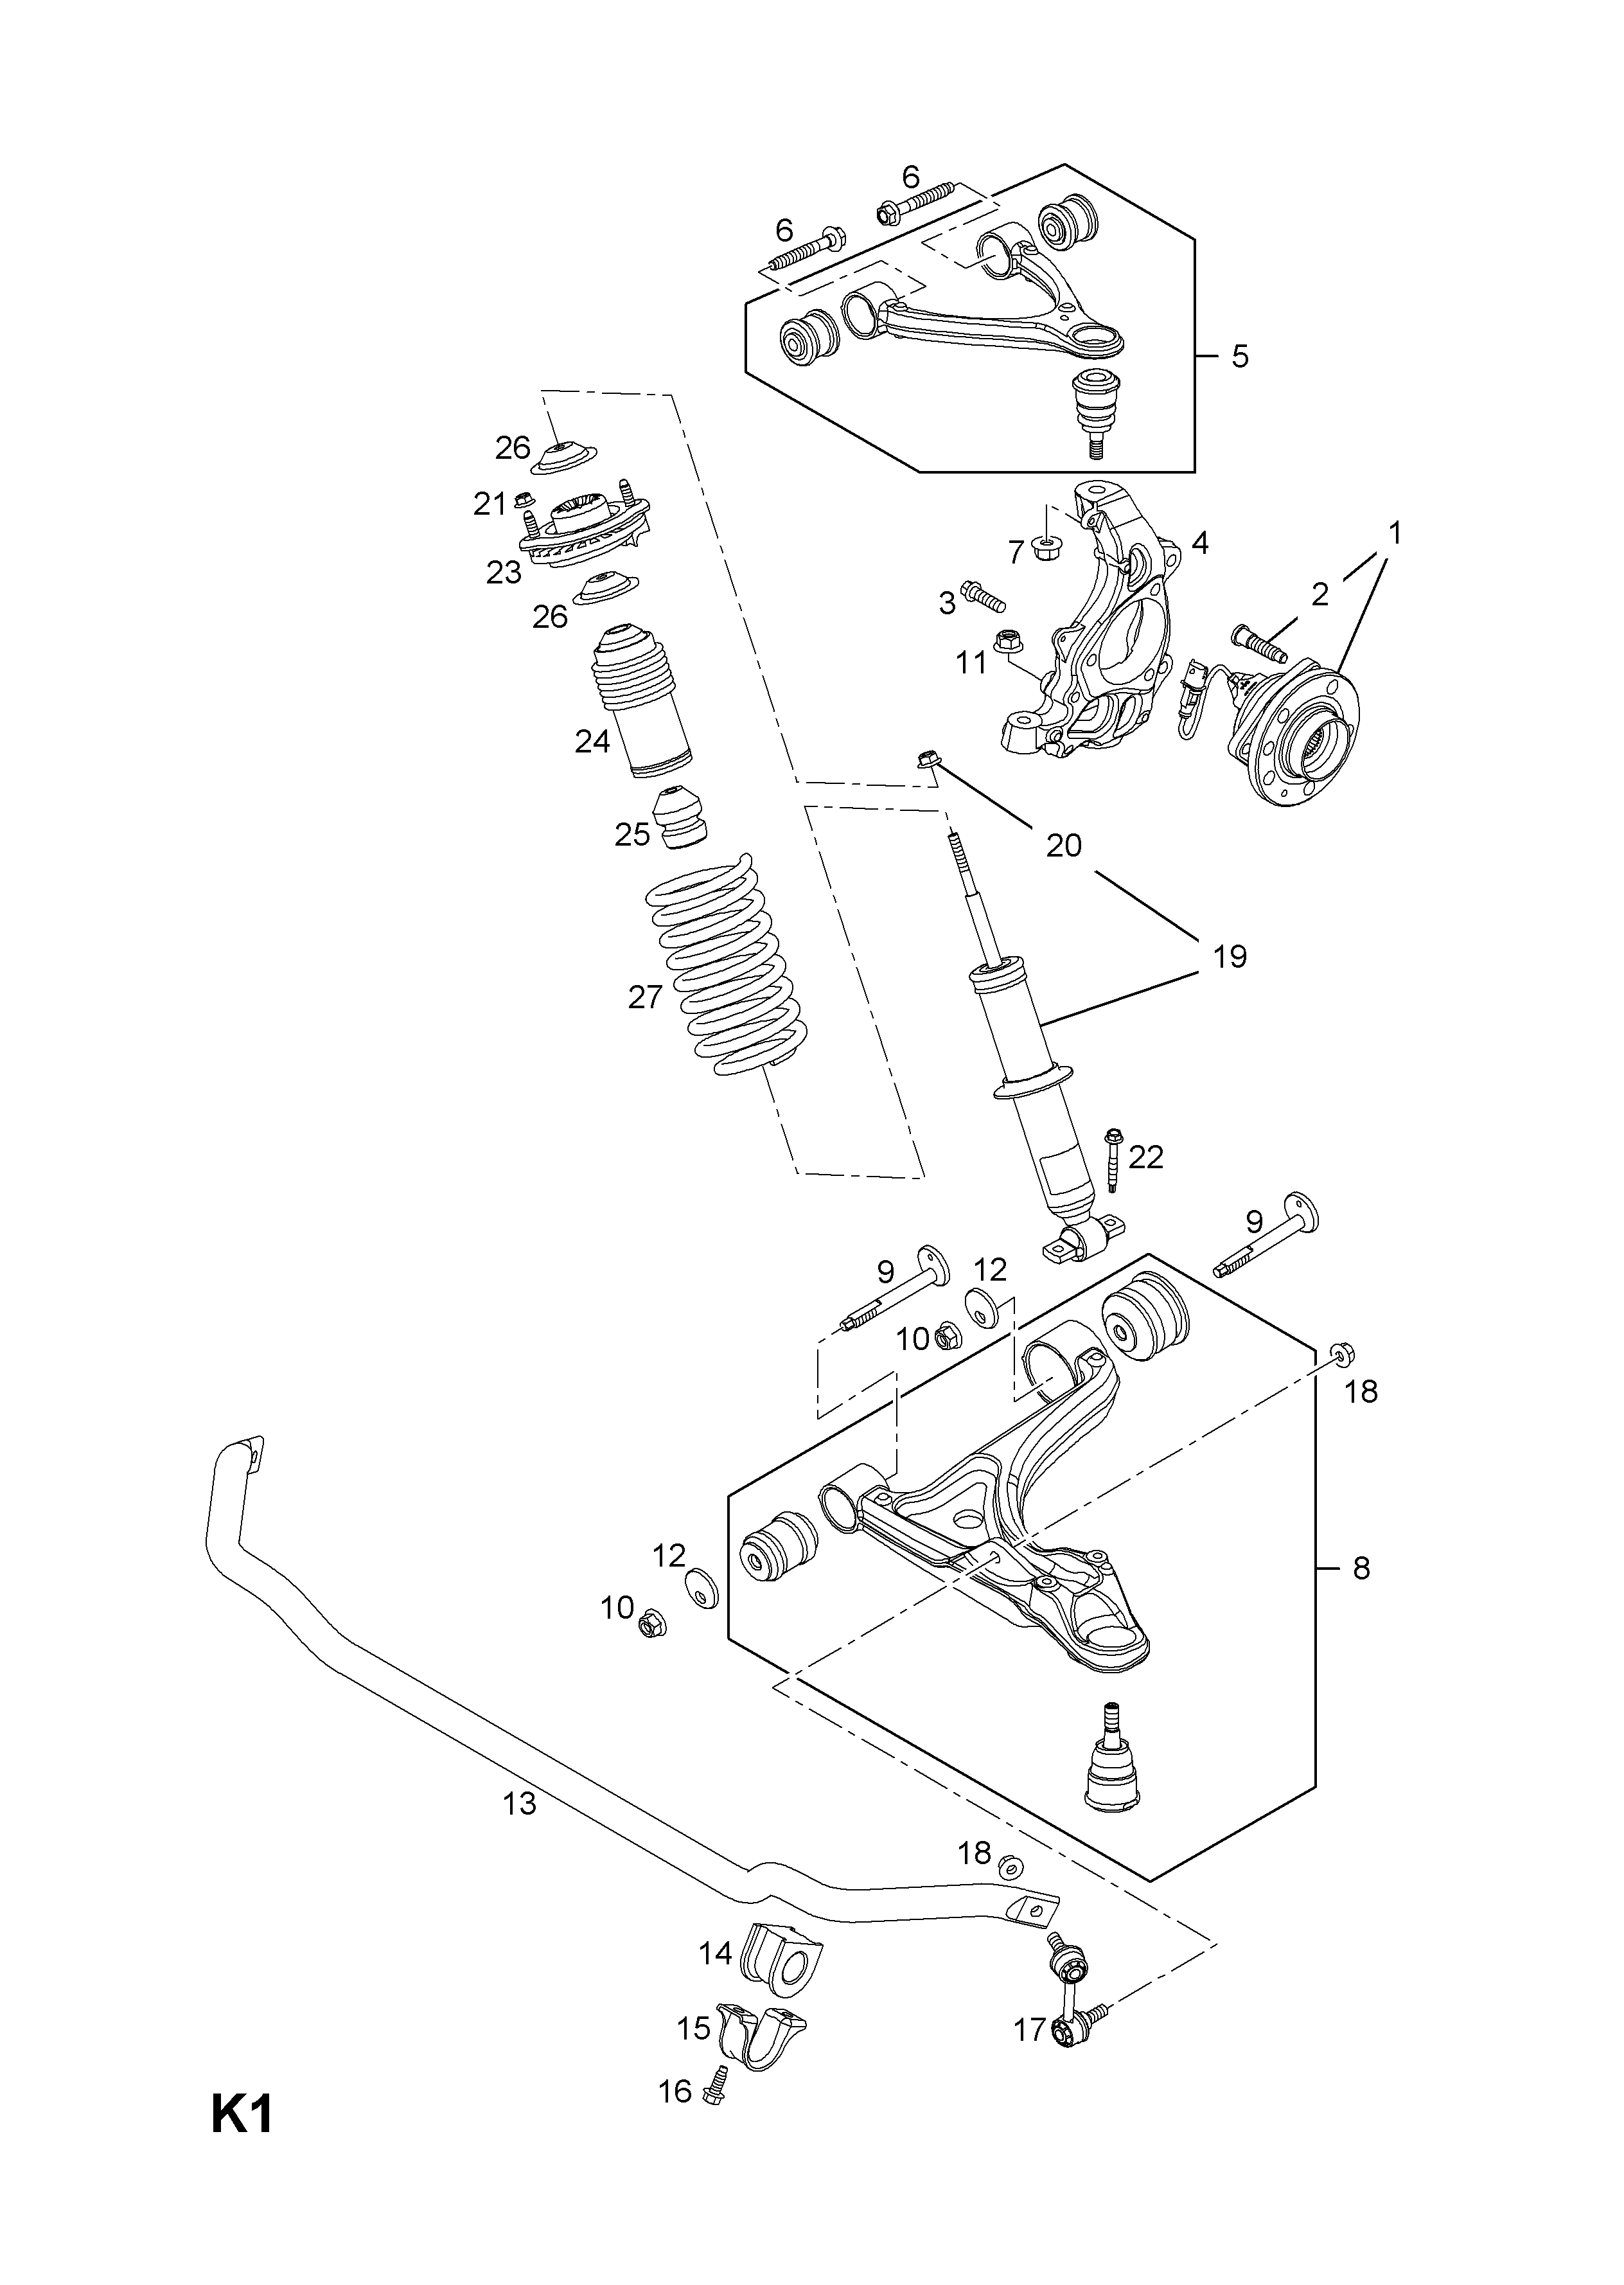 Opel Gt Front Suspension Diagram Electrical Wiring Diagrams 1970 2007 2009 K Axle And 6 Lower Doors